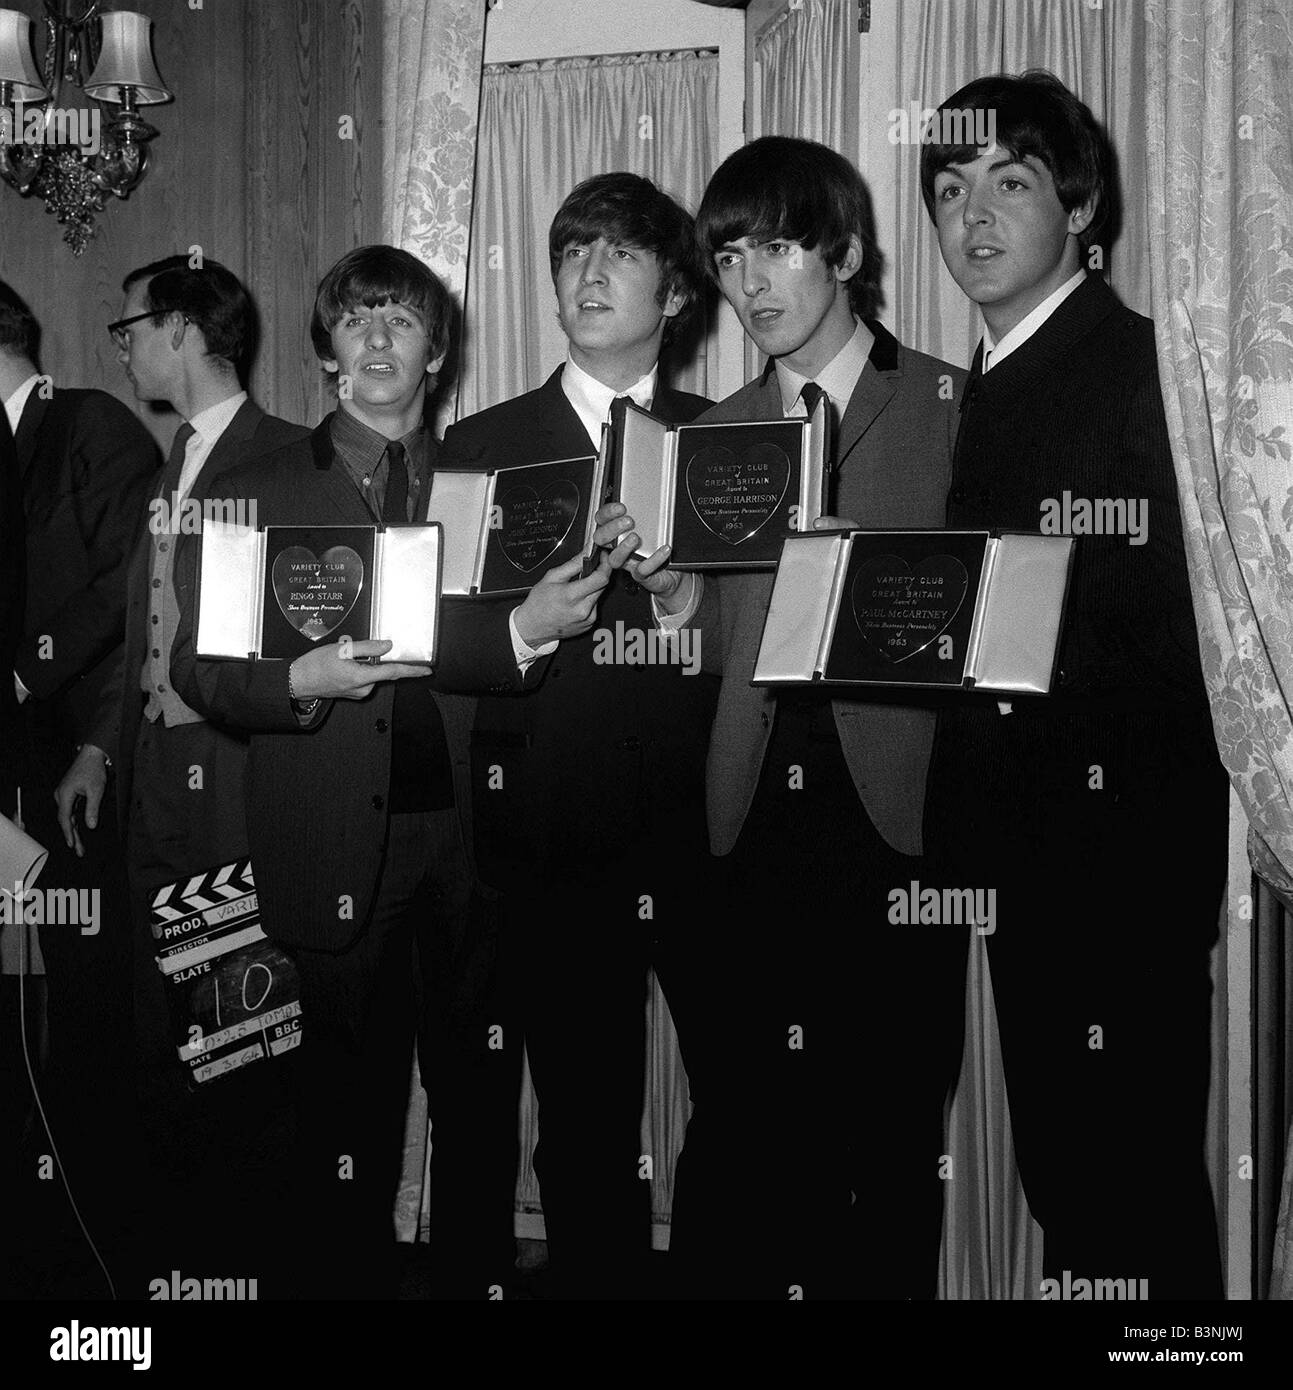 The Beatles L R Ringo Starr John Lennon George Harrison And Paul McCartney Holding Their Awards At